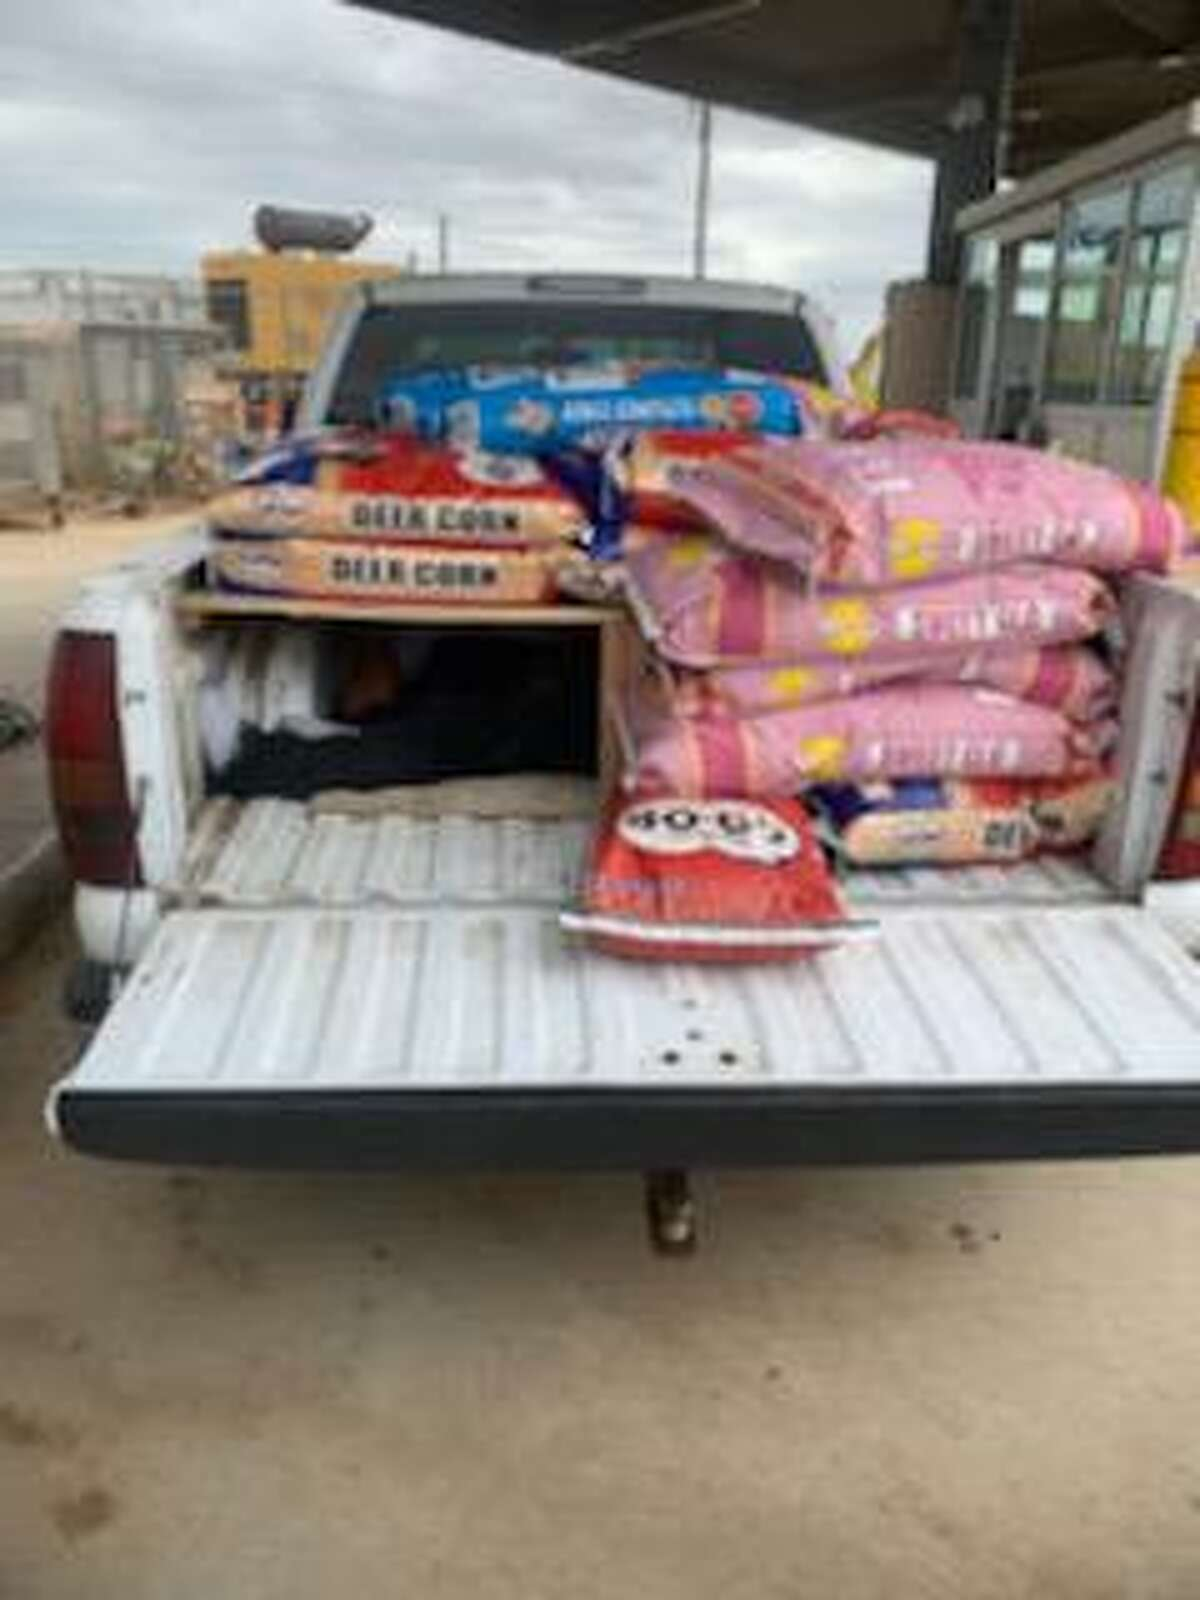 U.S. Border patrol agents found four people inside a compartment hidden underneath bags of deer corn, horse feed and dog food. The individuals were determined to be immigrants who had crossed the border illegally.